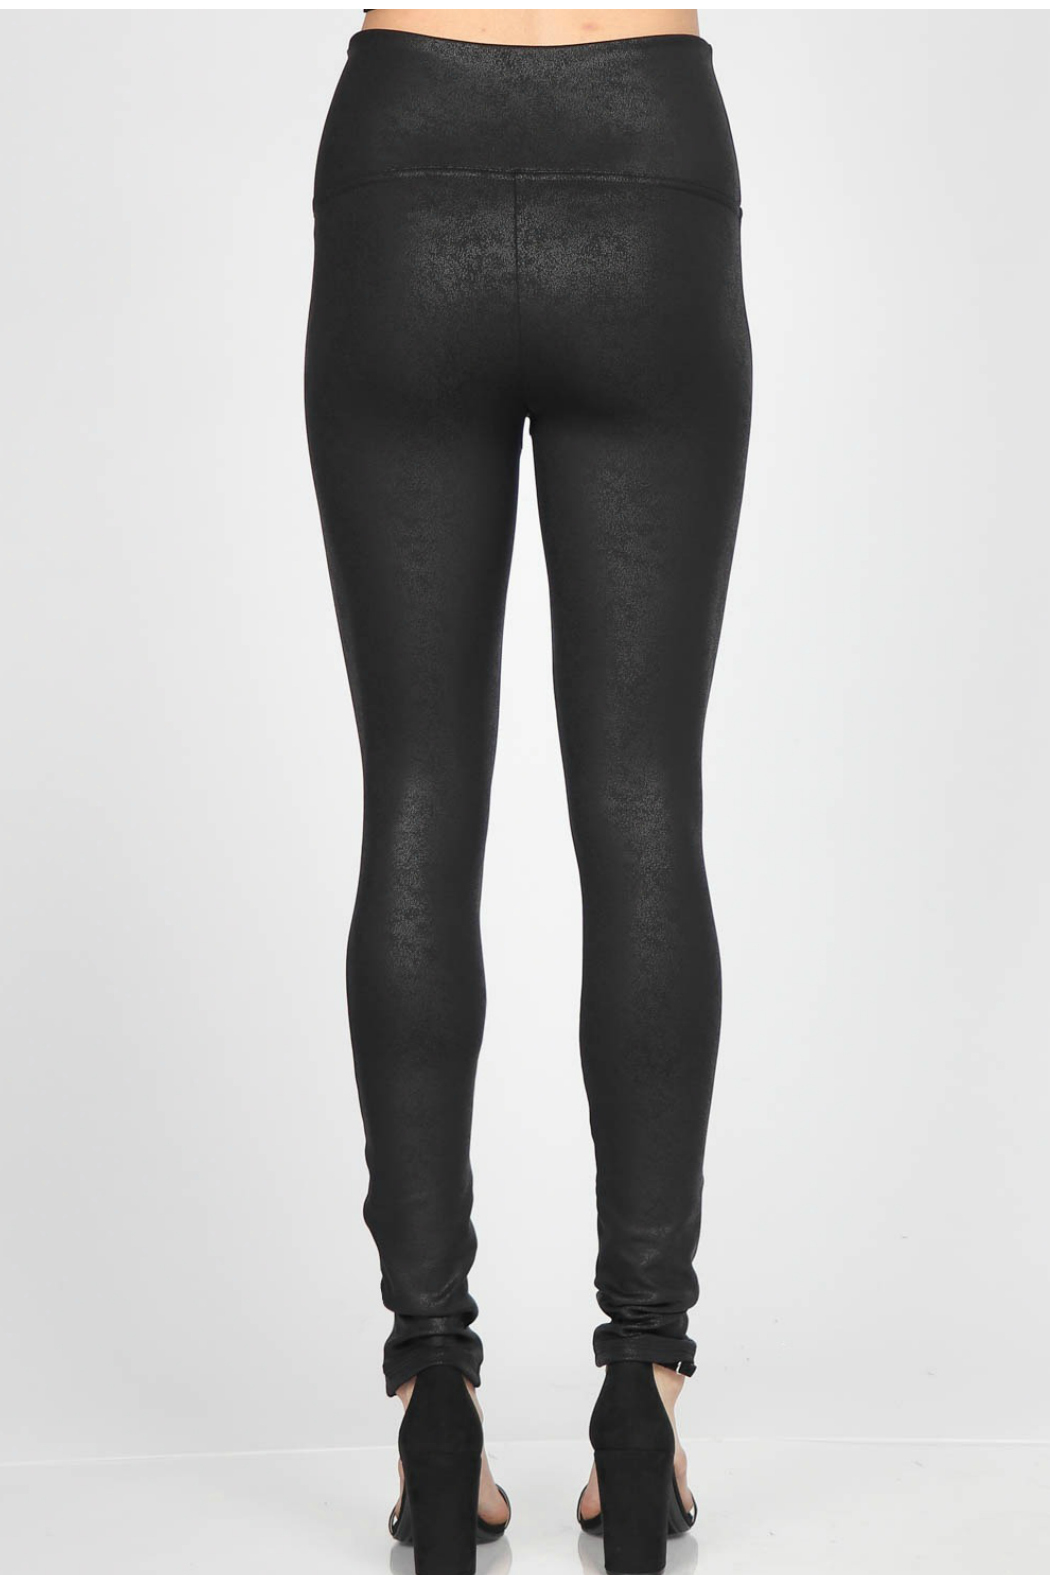 M. Rena  Antiqued Leatherette Legging - Front Full Image